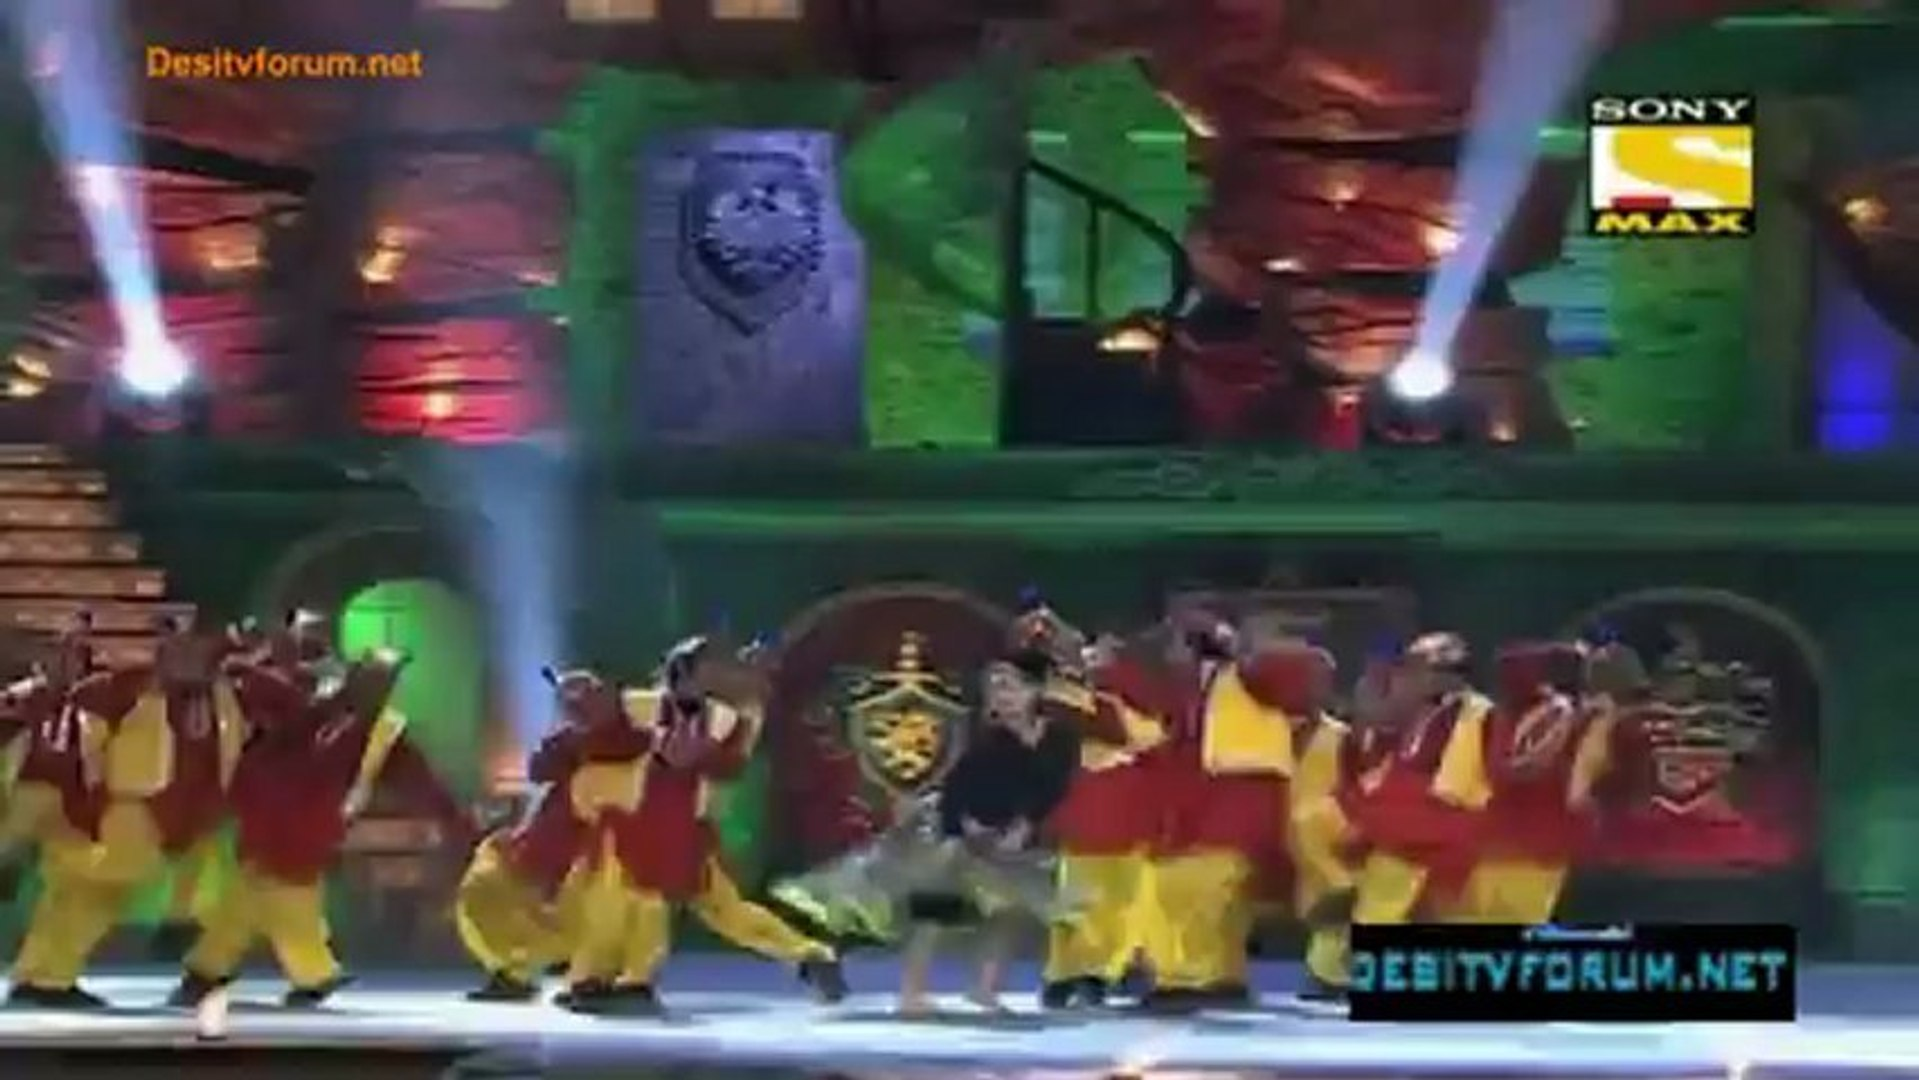 Max Stardust Awards 2013 10th February 2013 Video Watch Online 720p HD Part4